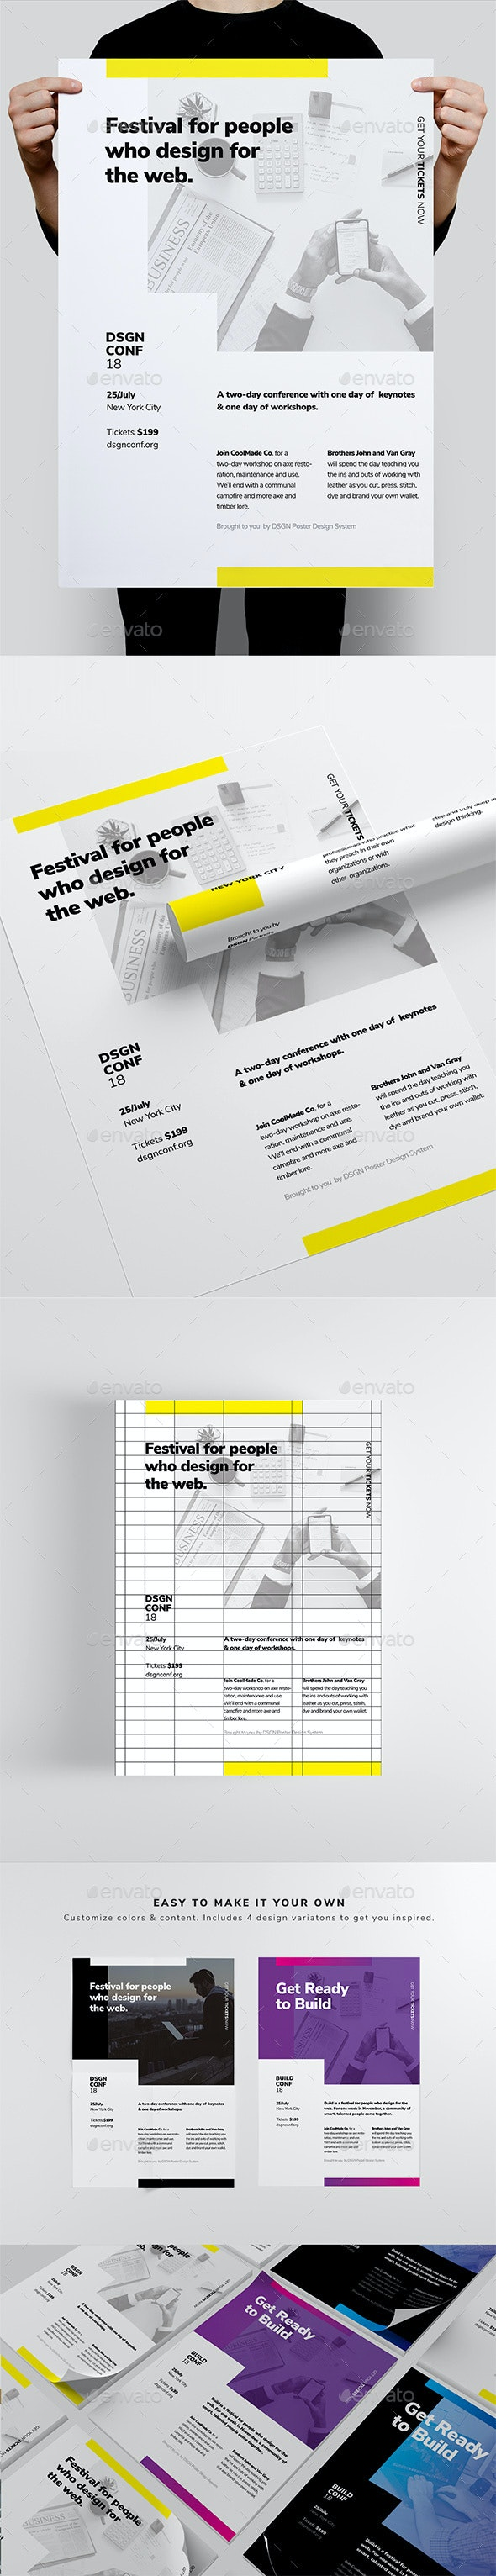 DSGN Series 10 Poster / Flyer Template - Corporate Flyers